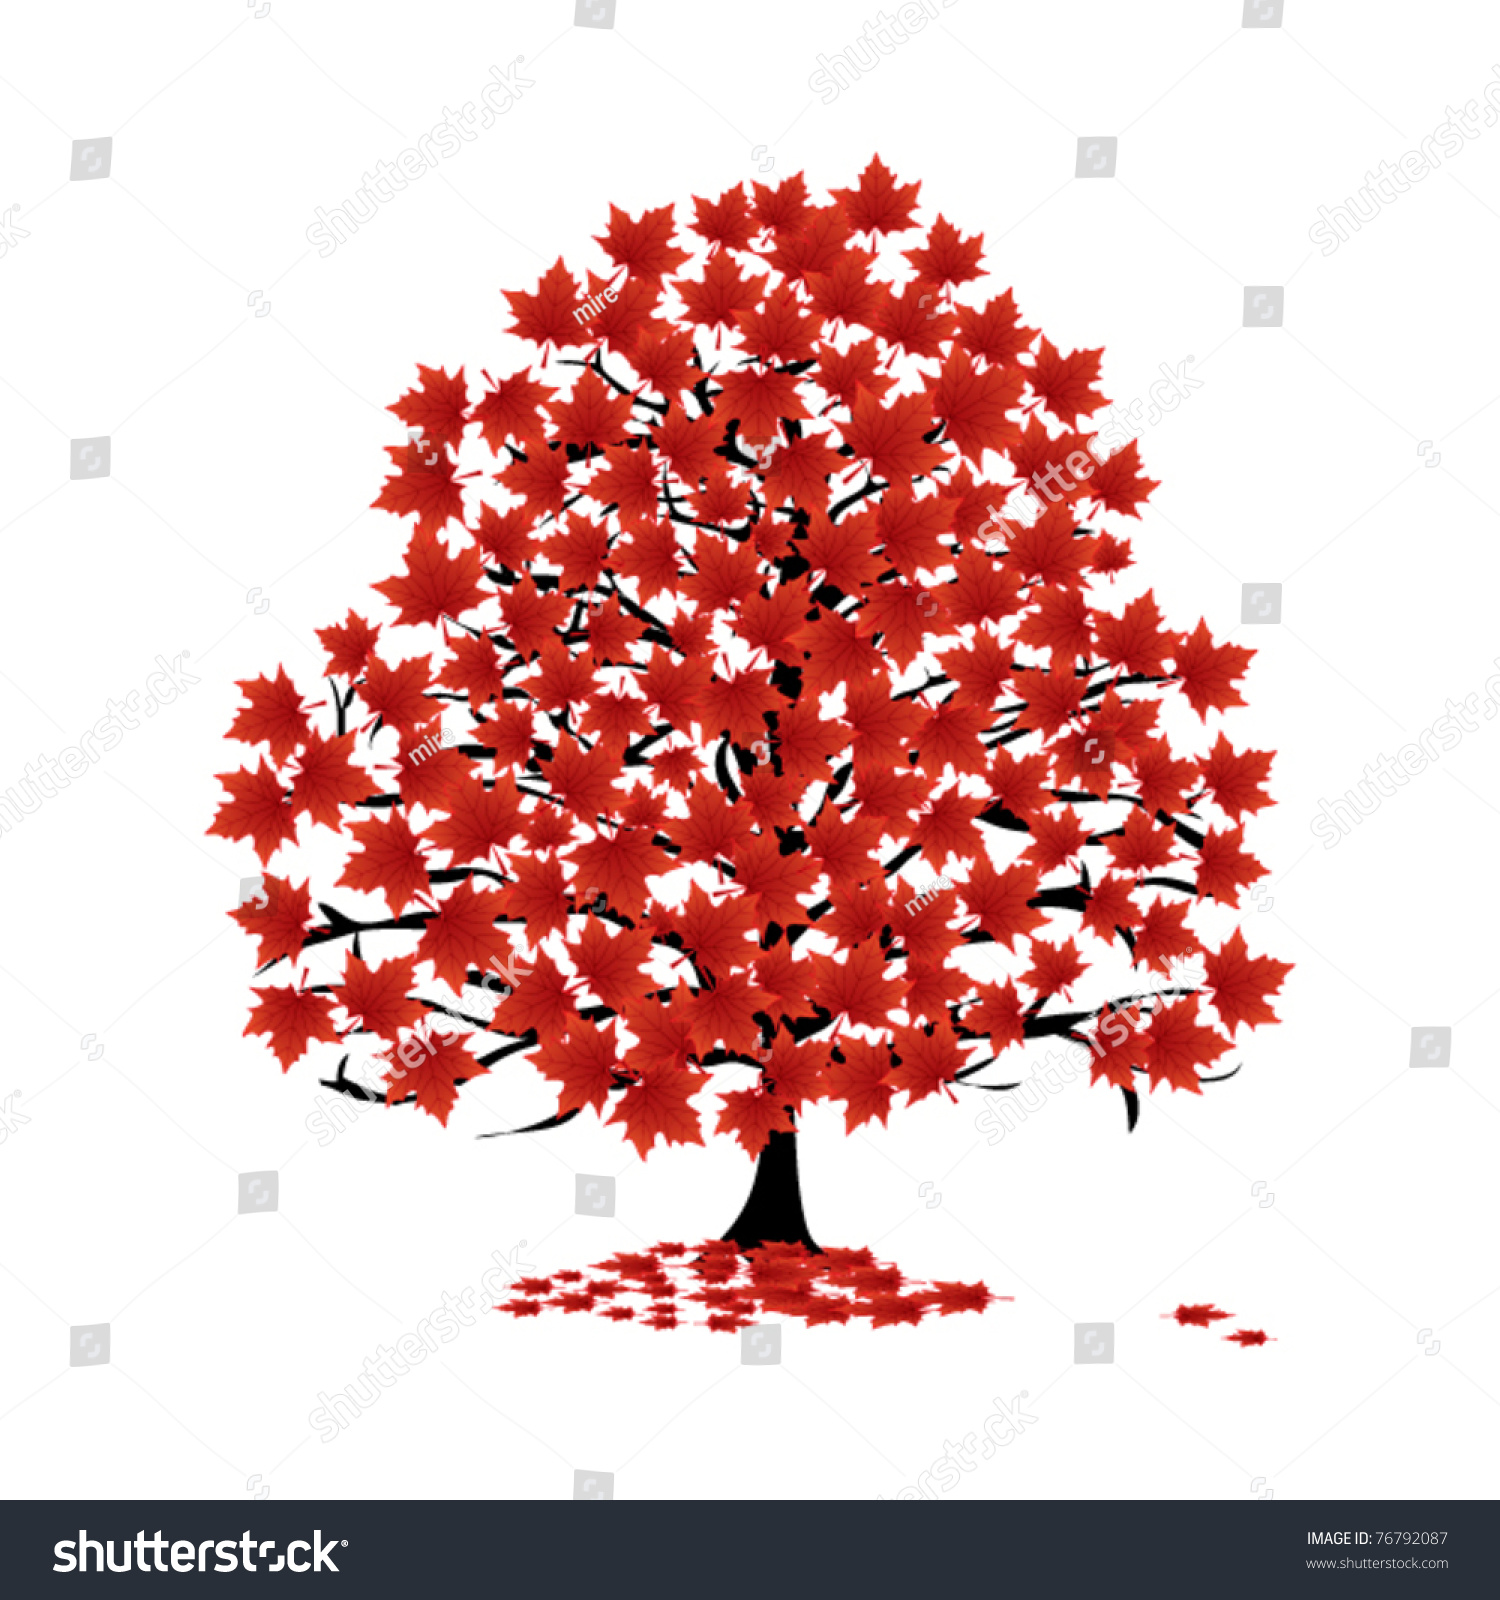 tree seed helicopter with Stock Vector Maple Tree Illustration Vector on Field Maple Acer C estre Fruits Bob Gibbons additionally Seeds also Royalty Vrije Stock Foto S De Zaden Van De Esdoorn Op De Boom Image28336168 also Propagation With Wind as well Sementes Voadoras Tipo Helicoptero.